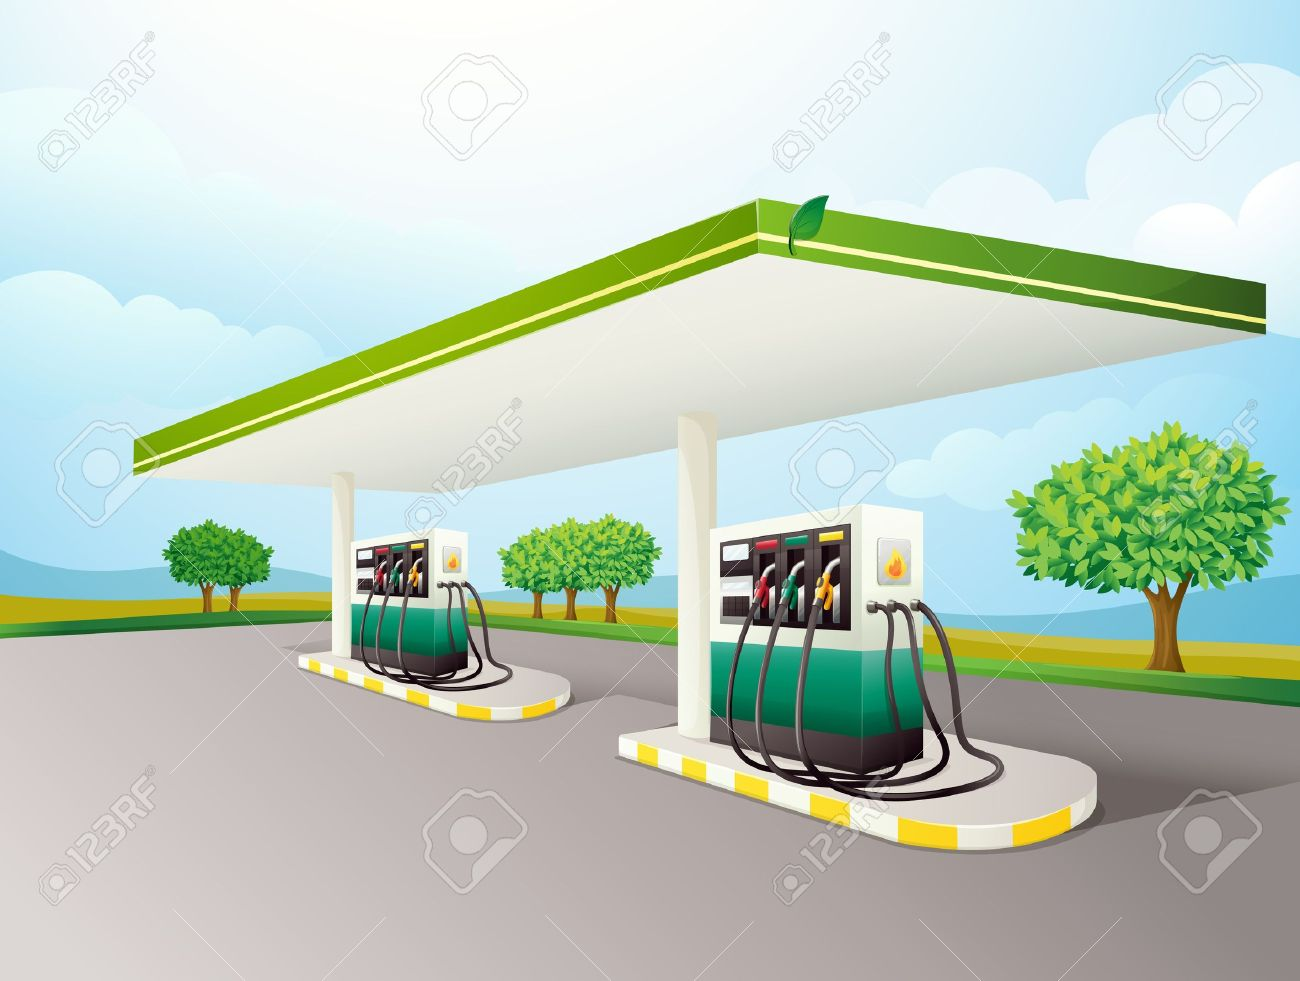 Illustration of a gas station scene Stock Vector - 14106860